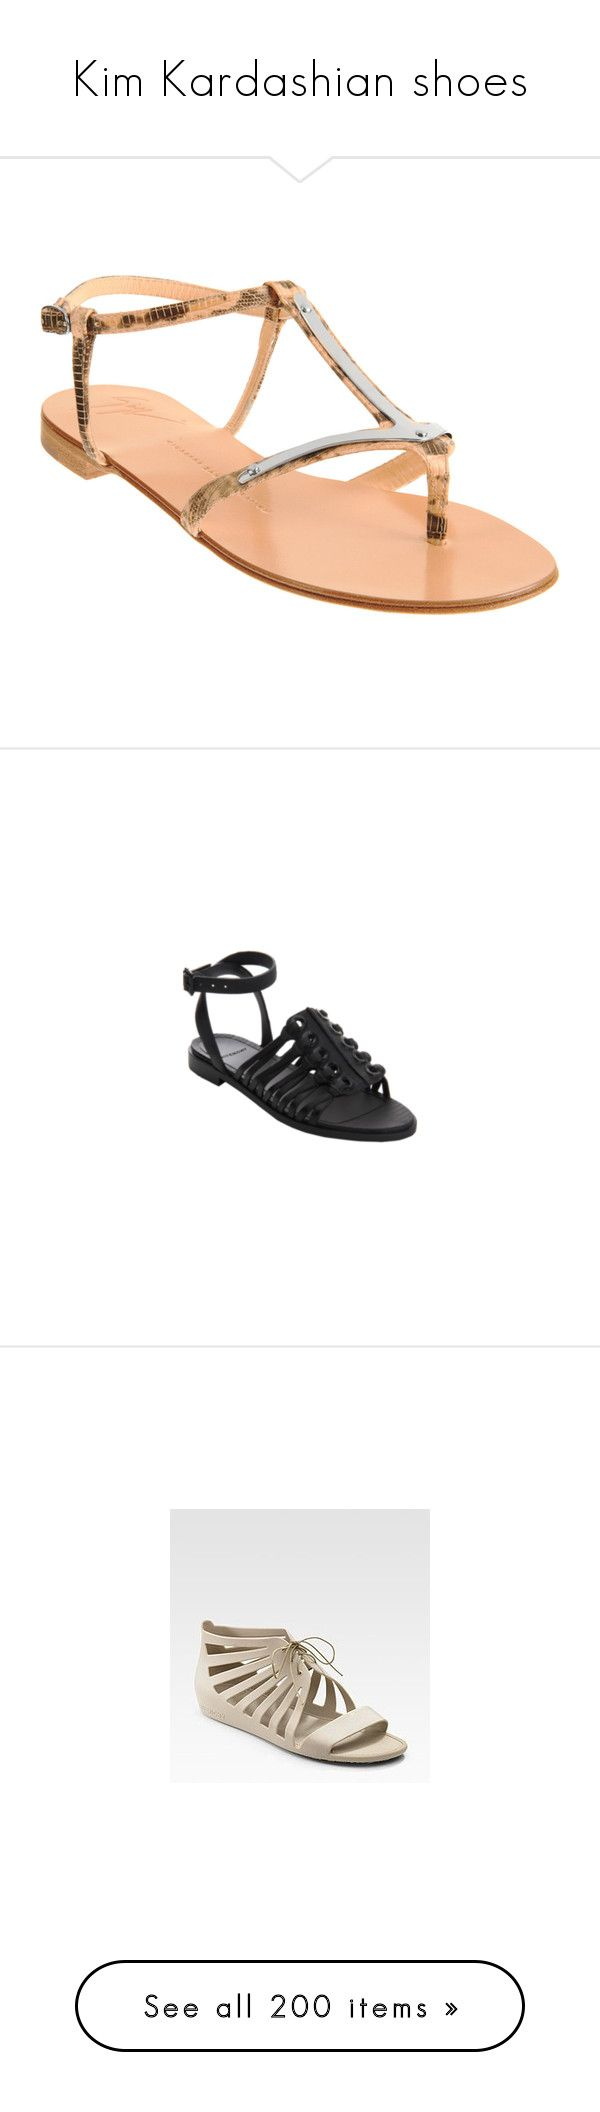 """Kim Kardashian shoes"" by marilia13 ❤ liked on Polyvore featuring shoes, sandals, black white, rubber sandals, givenchy shoes, black white shoes, logo shoes, givenchy sandals, flats and gold croc"